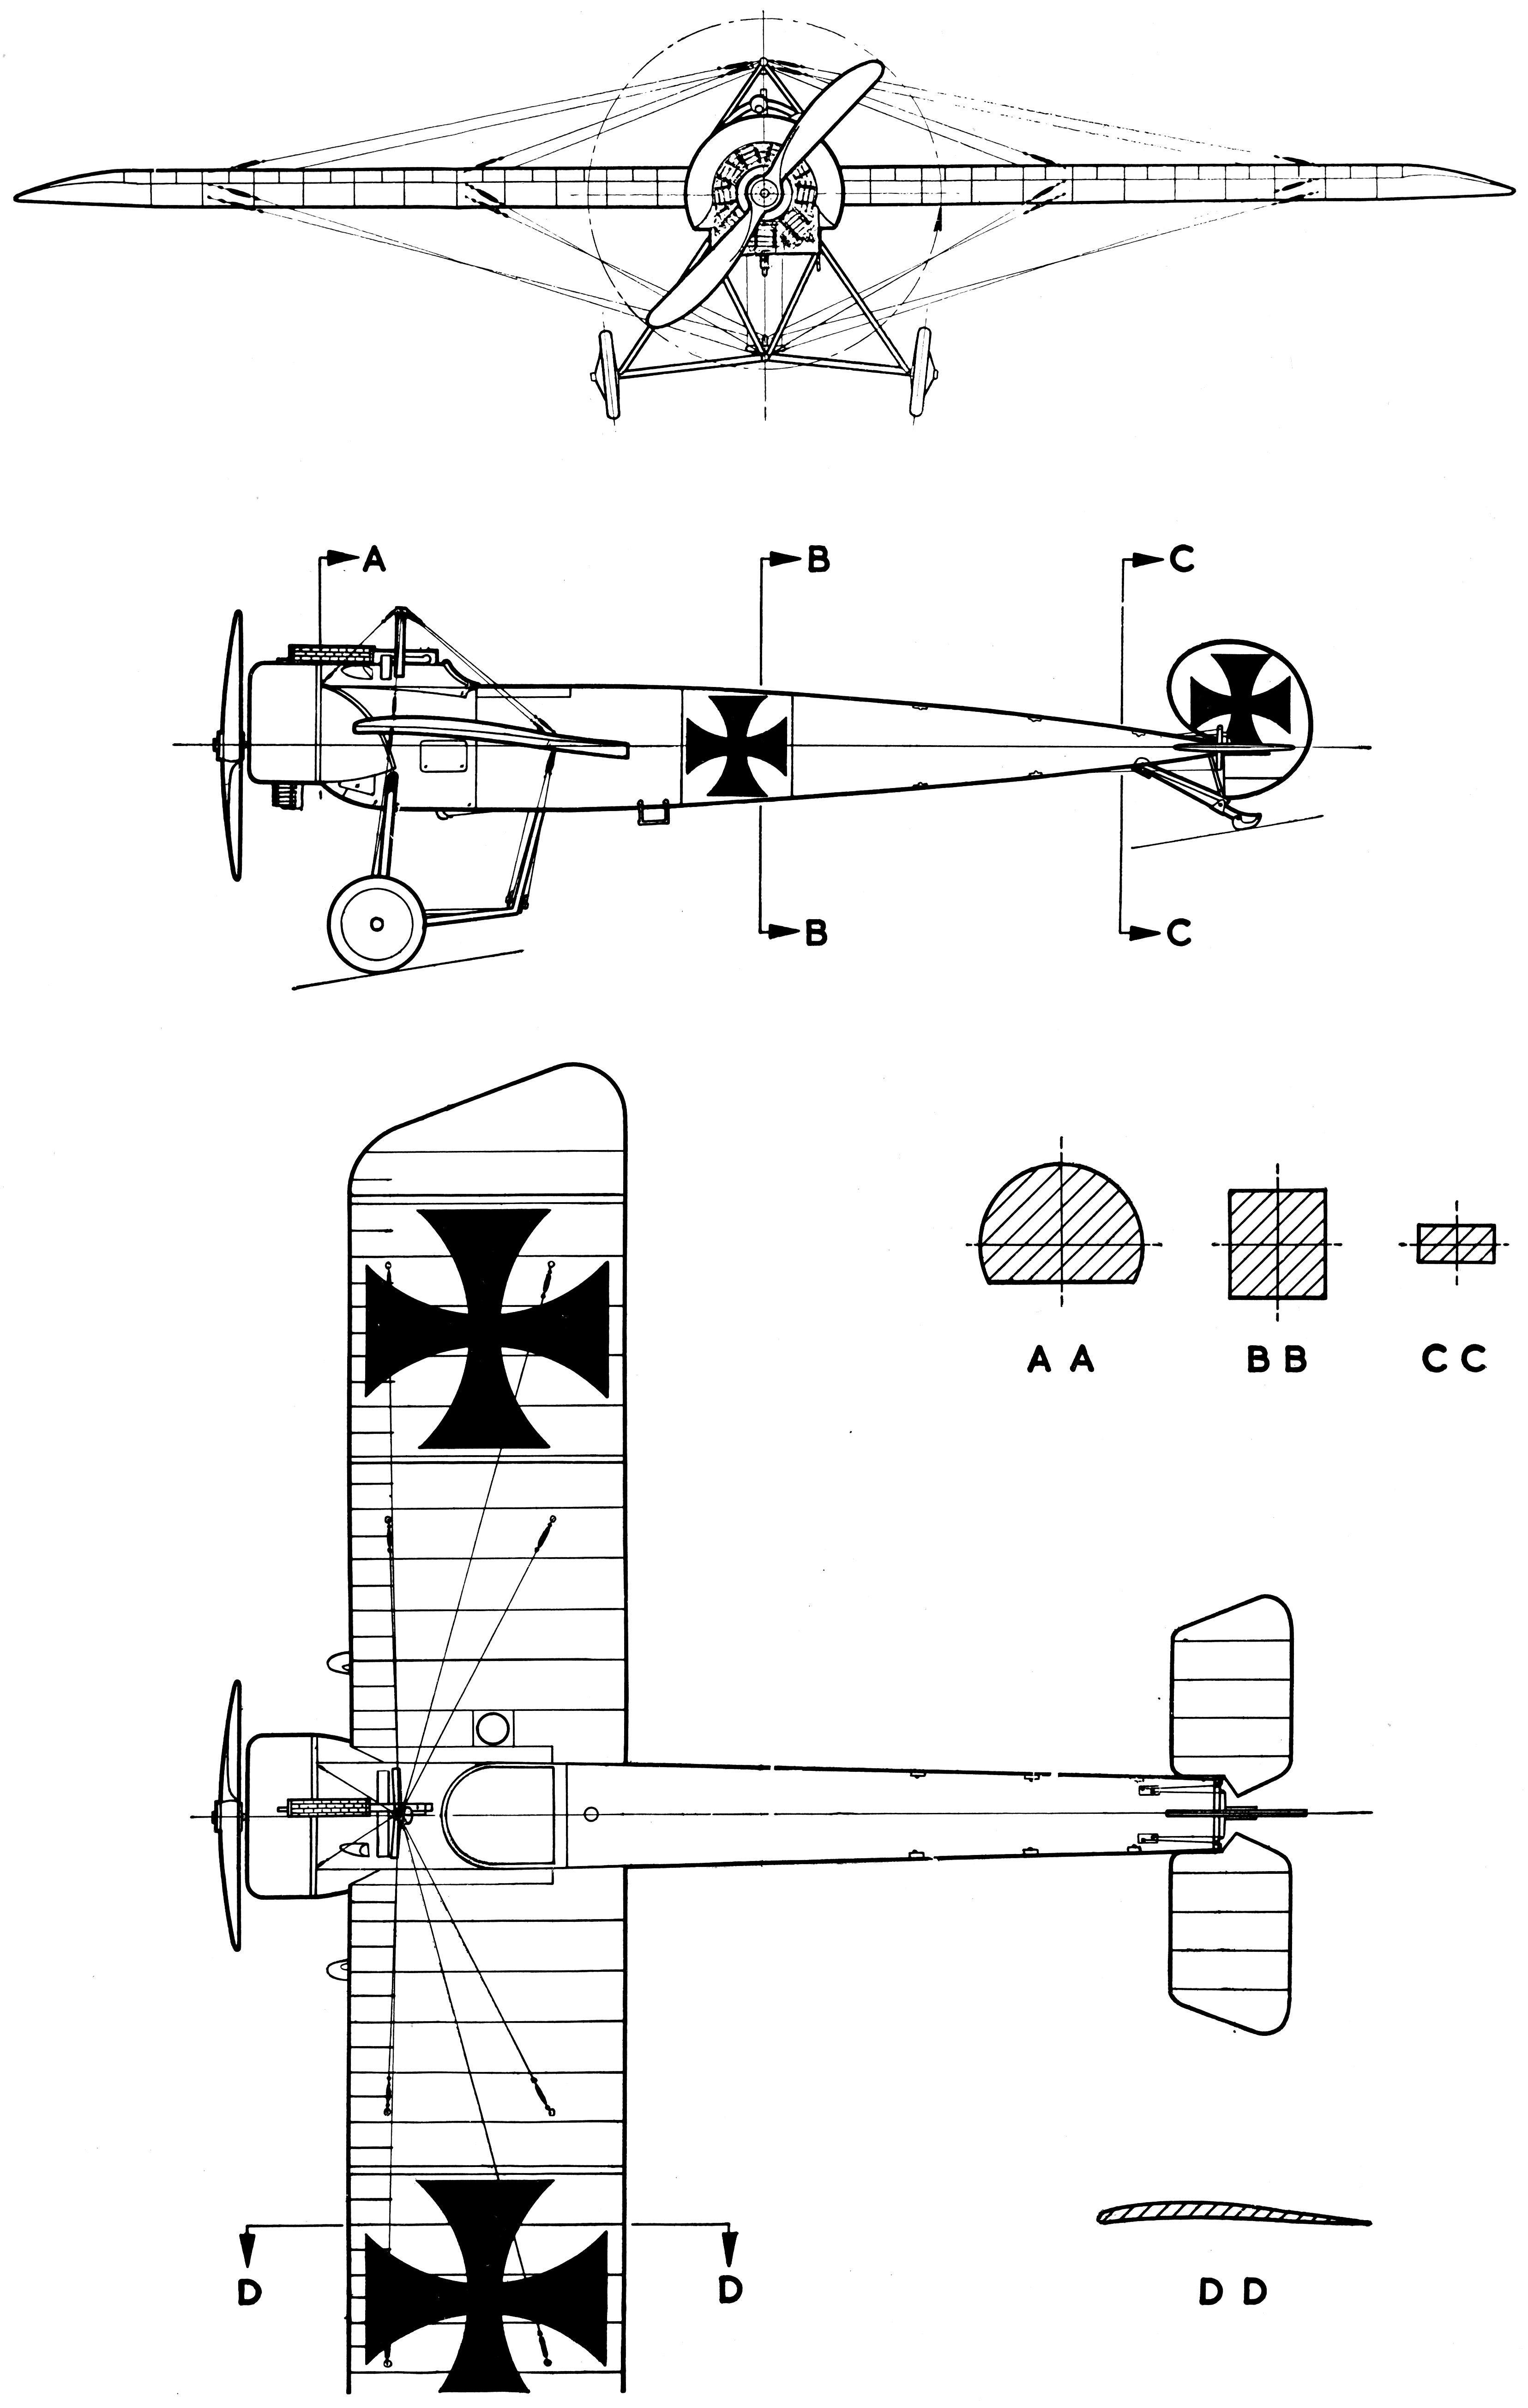 Tam 110 moreover Understanding Alternator in addition Maserati Birdcage Tipo 61 2459 also Mat Course Module Five S le Page as well Focke Wulf Fw 190. on general motors